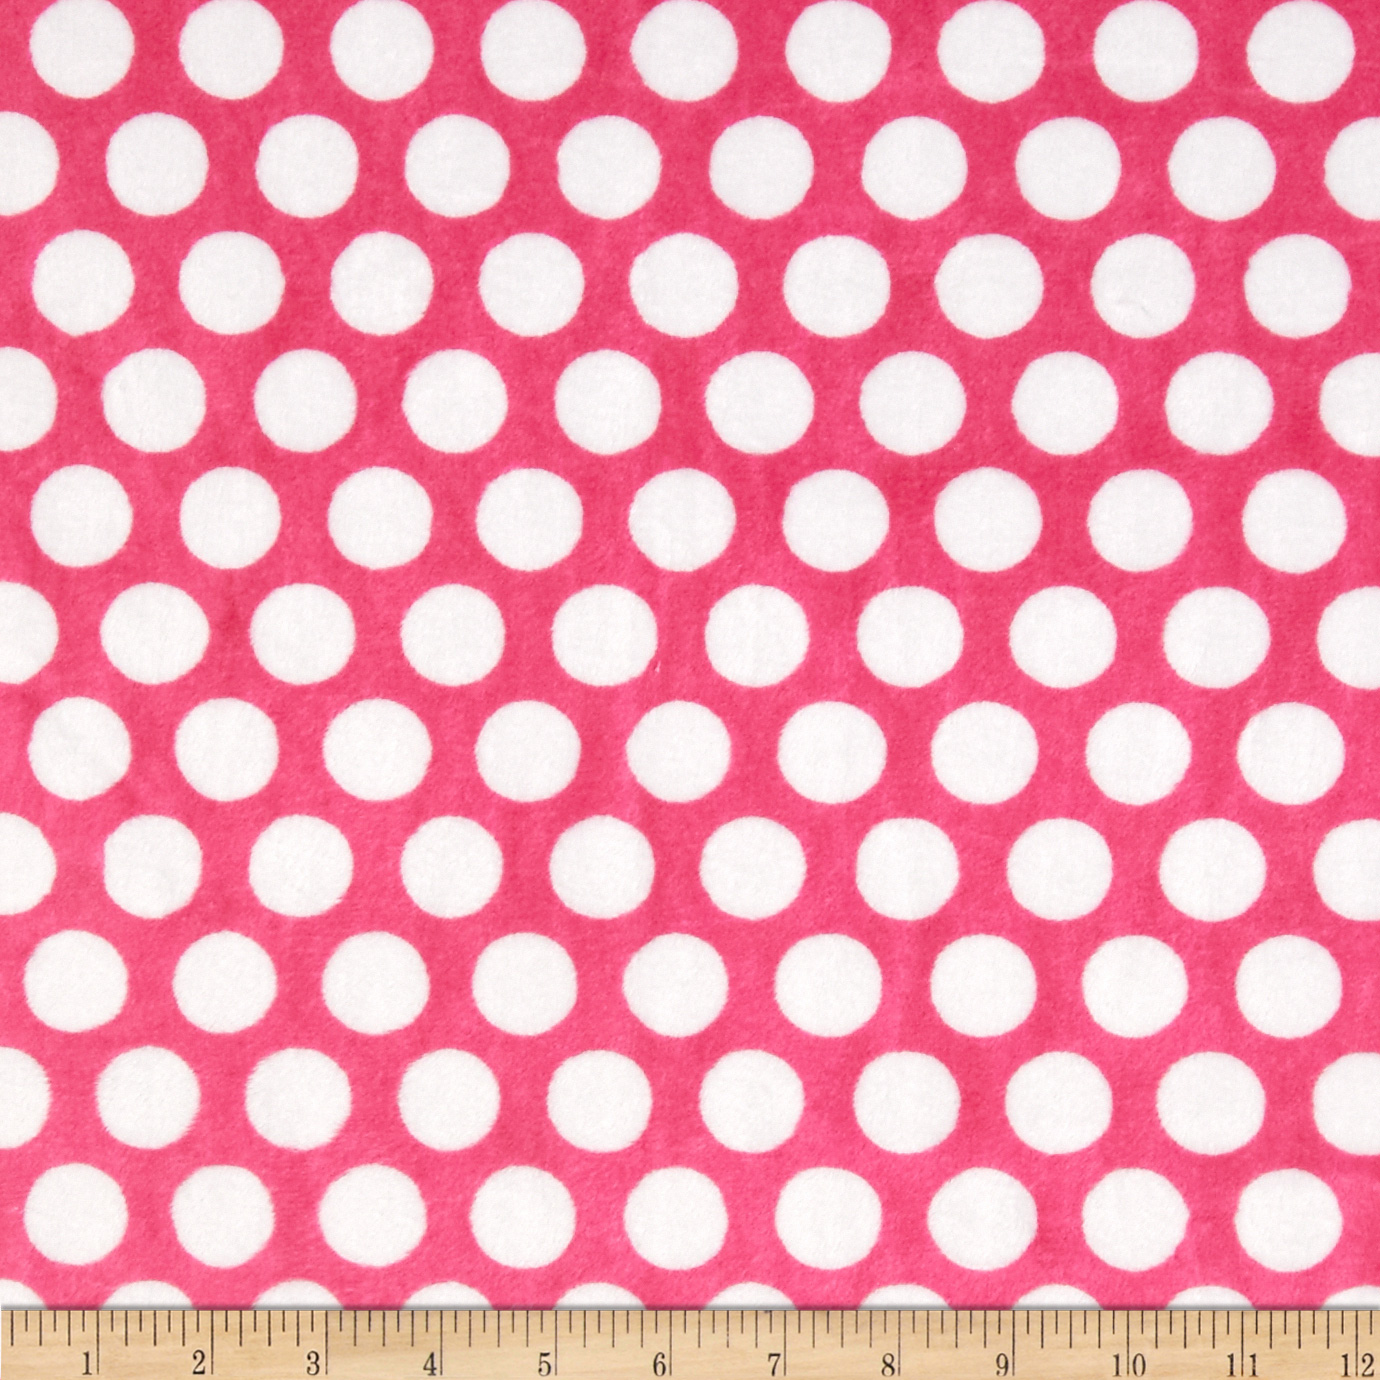 Minky Cuddle Classics Mod Dot Fuchsia/Snow Fabric